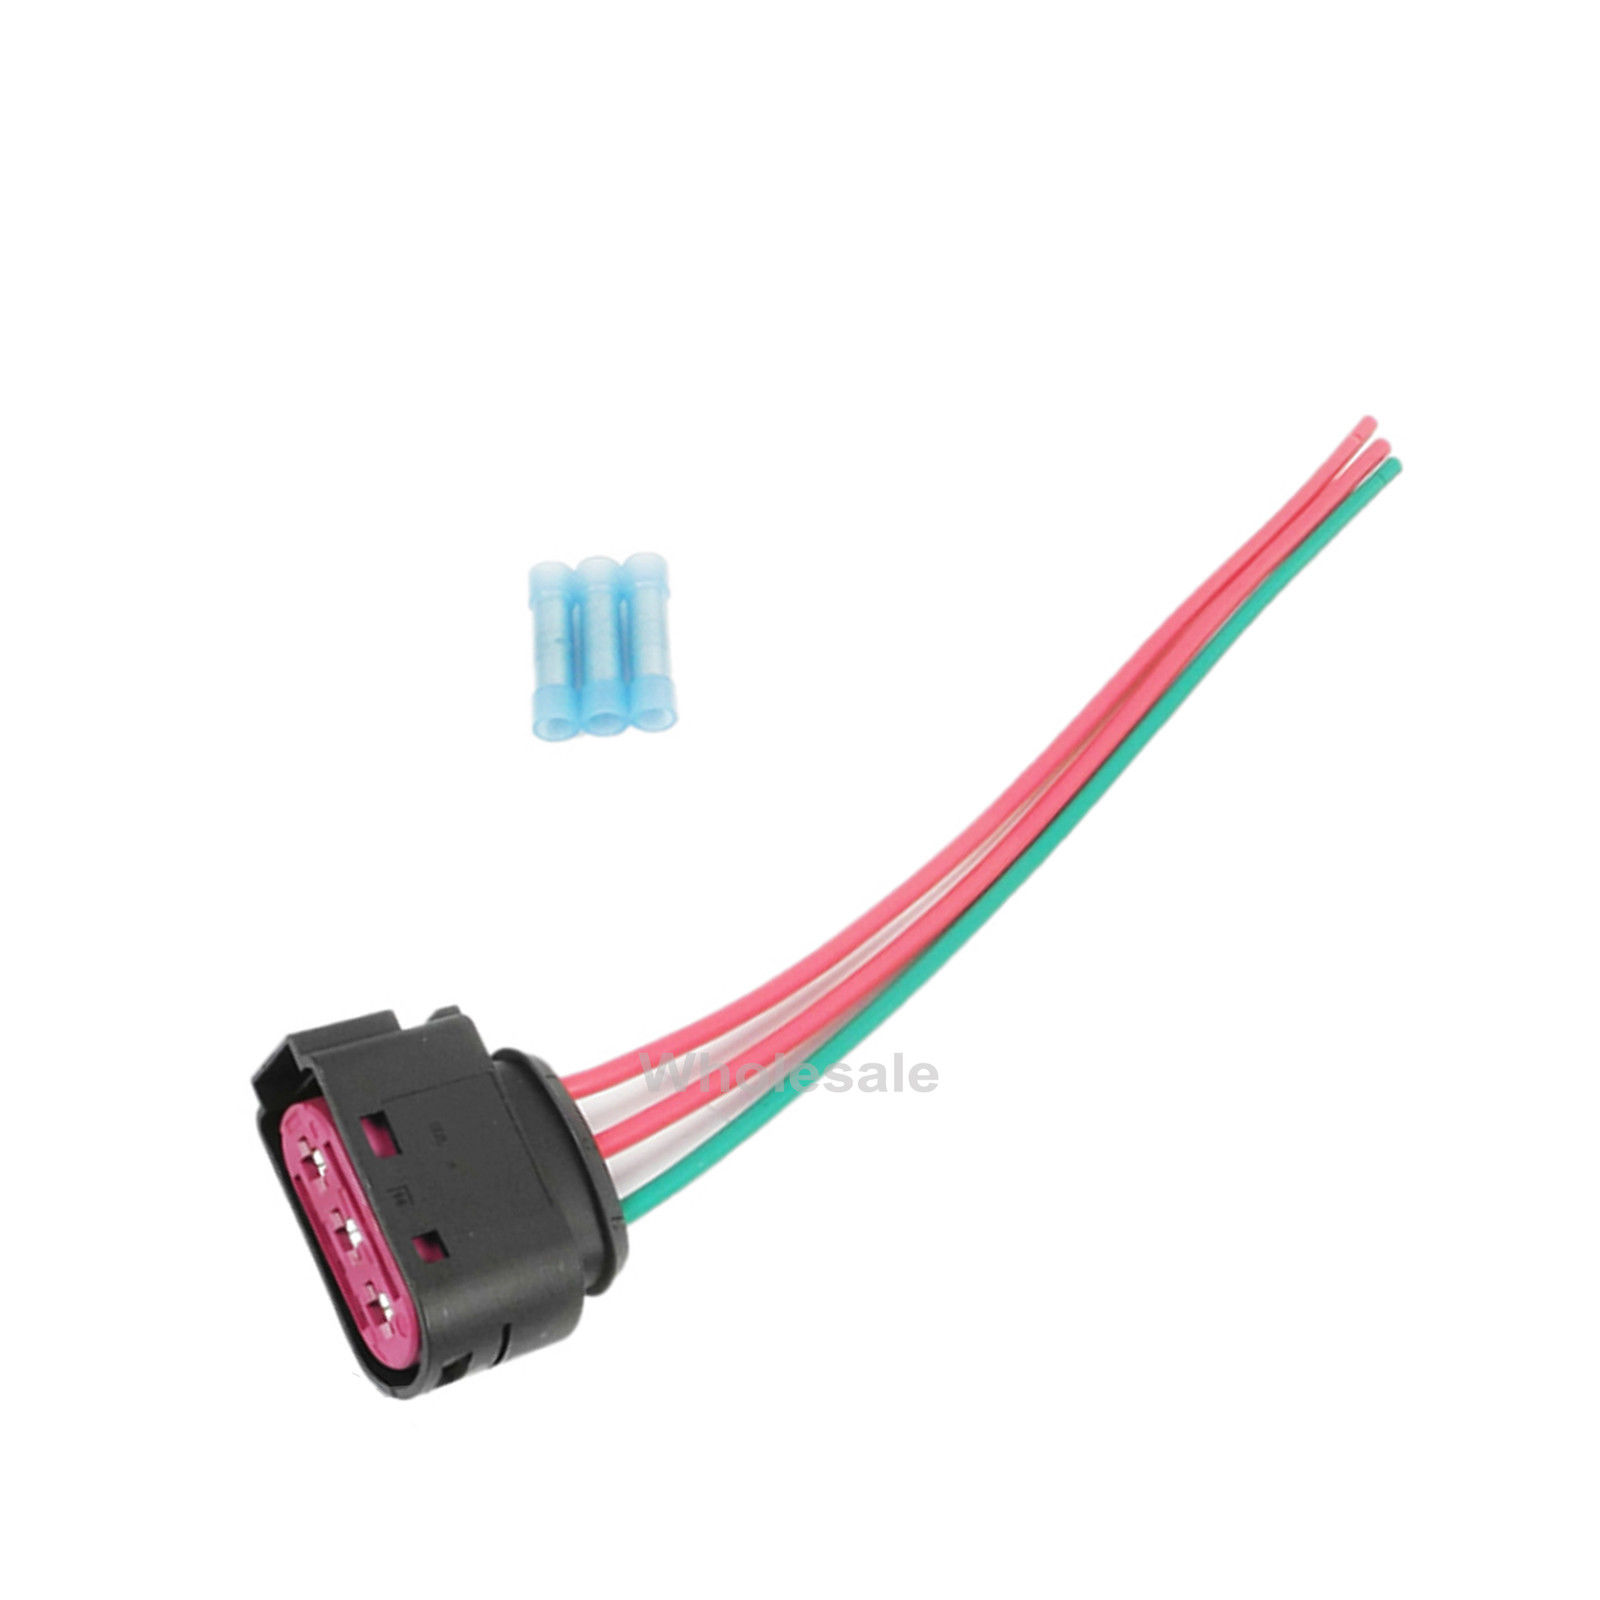 hight resolution of details about for volkswagen jetta golf mk4 beetle audi a3 fuse box connector 3 pin plug c966